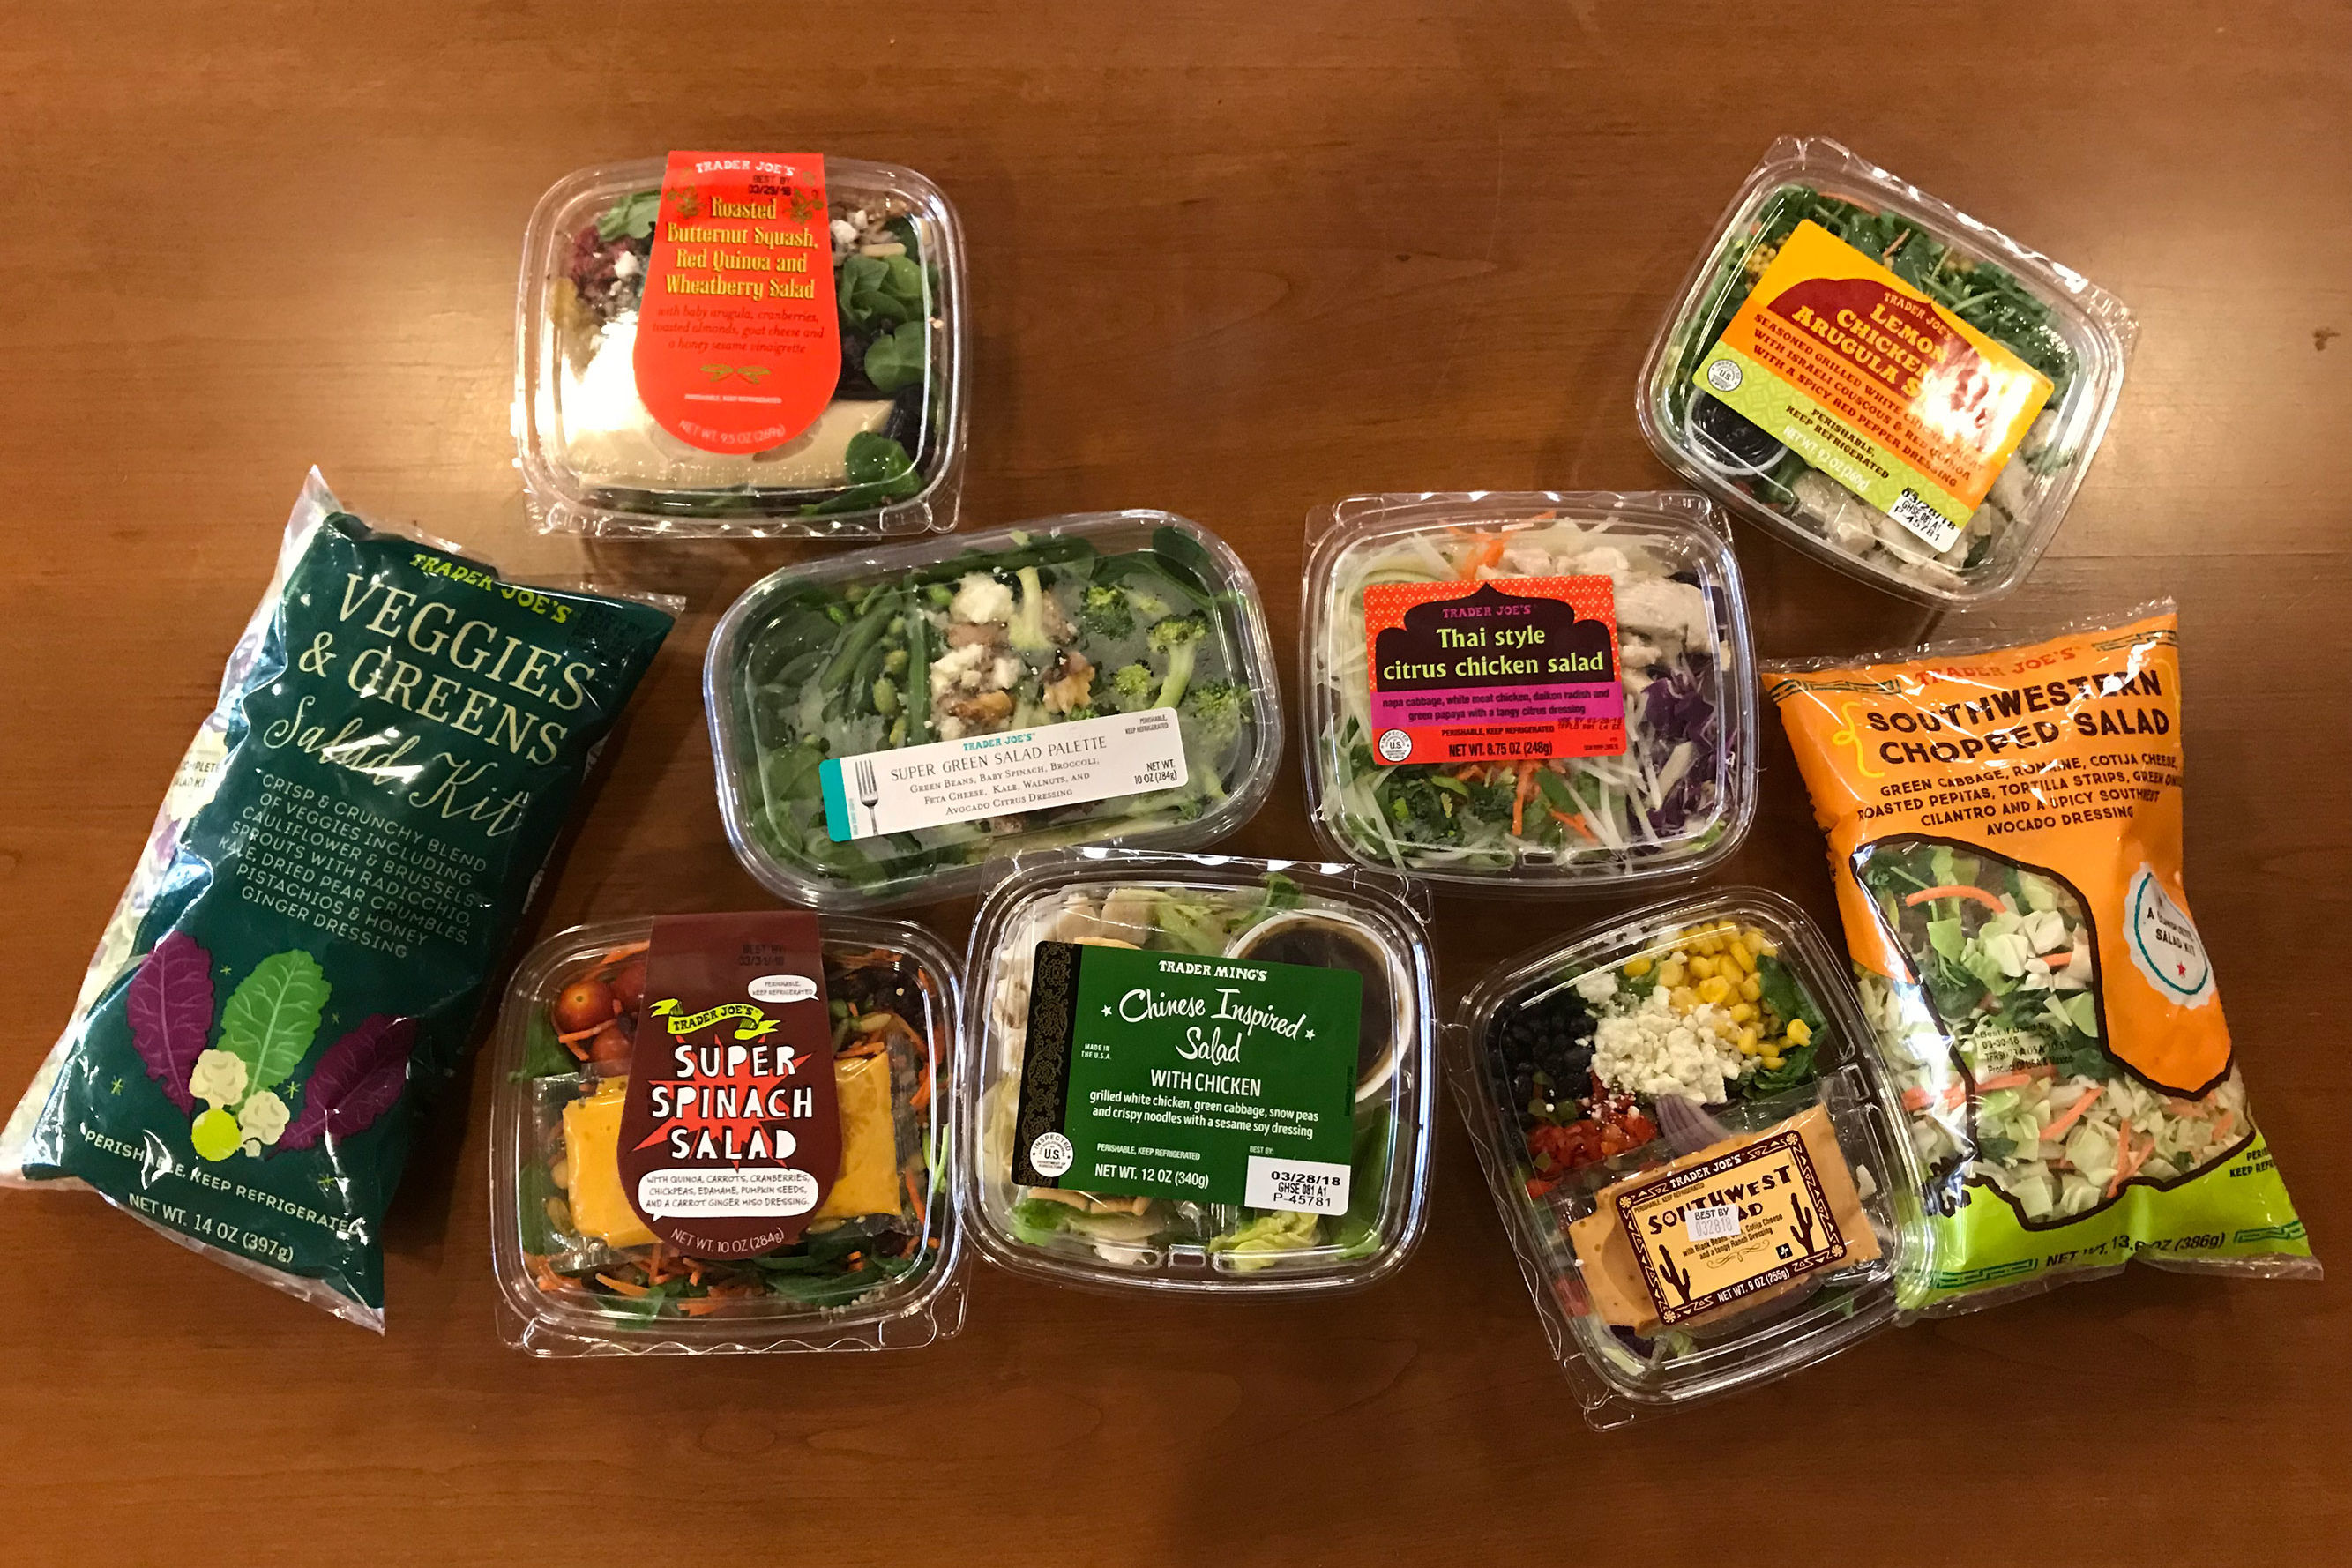 We Tried 9 Trader Joe's Salad Kits—And This One Was Our Favorite